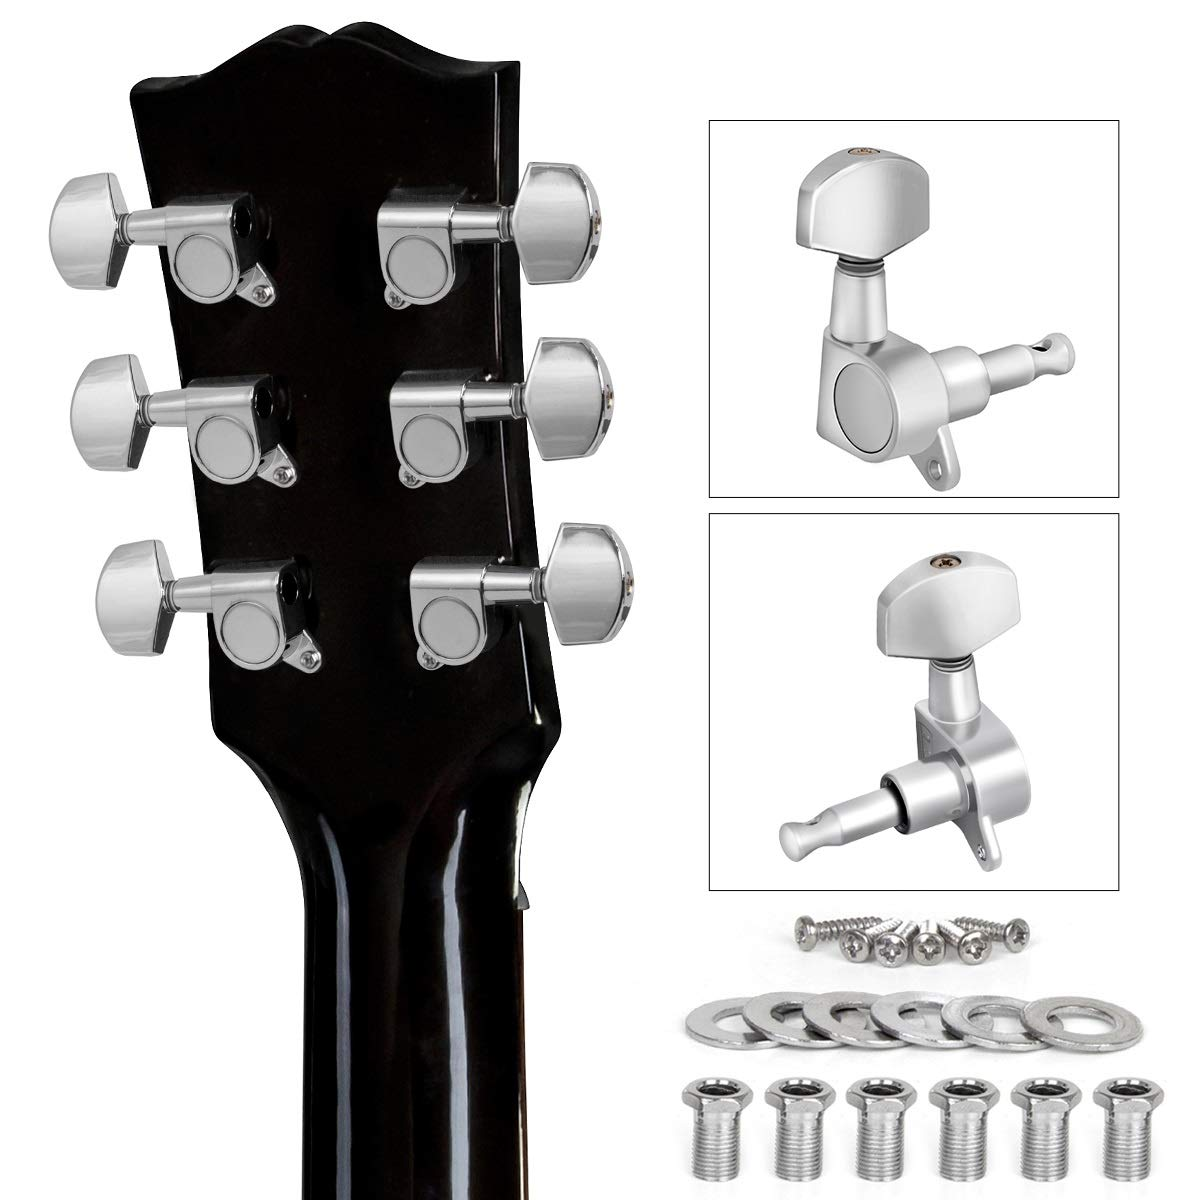 lotmusic Guitar Tuning Pegs, Tuners Machine, 18:1 3L3R, Tuner Keys Heads, Closed Chrome for Guitars Luthier DIY Repair (Shape A)